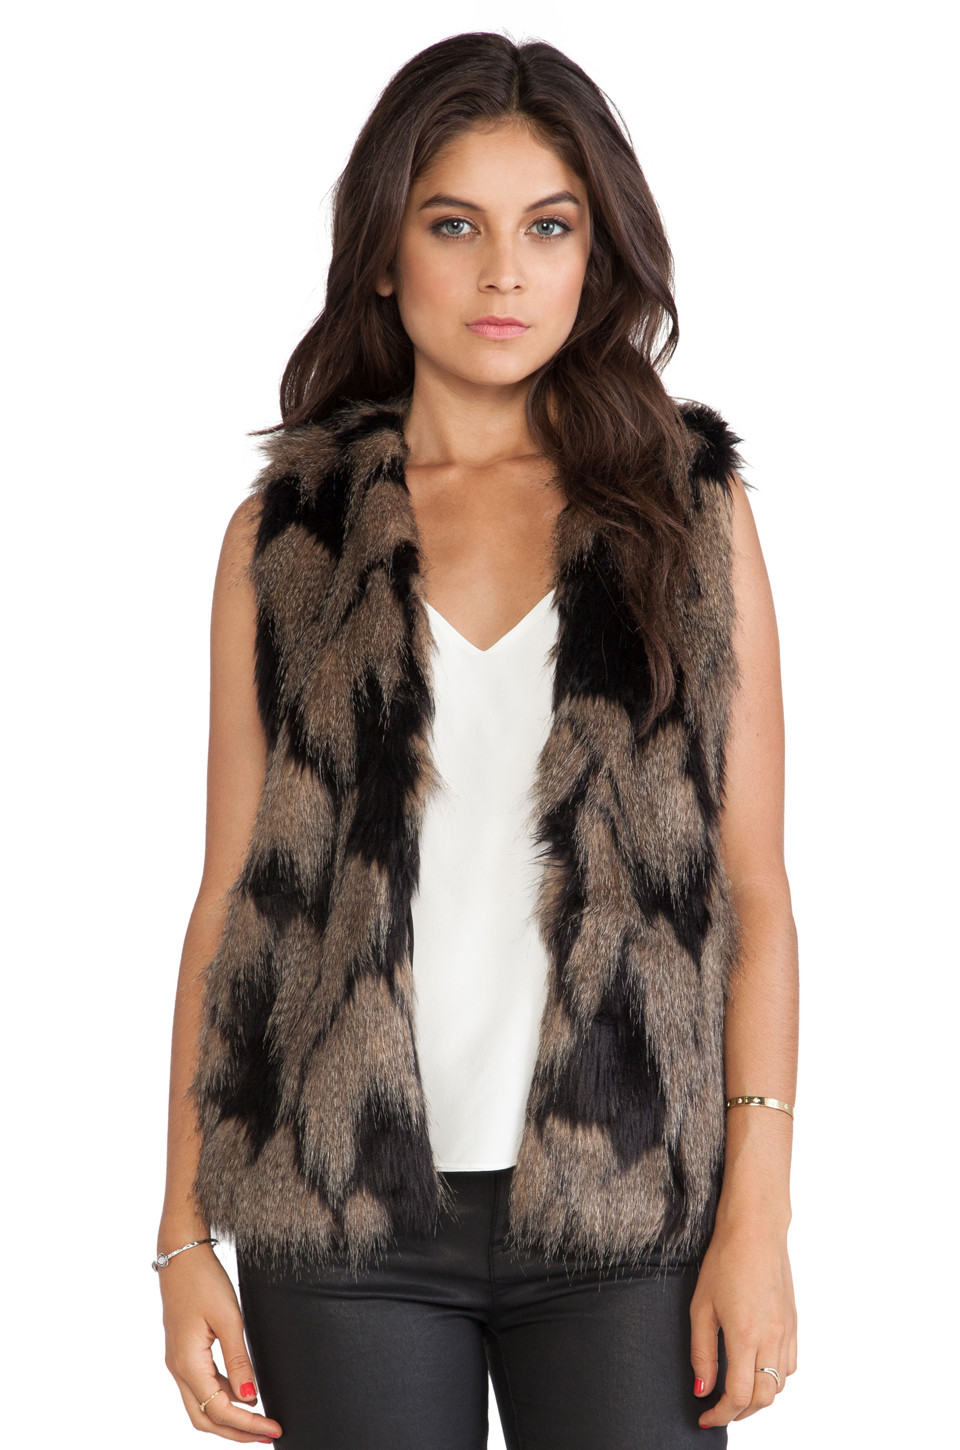 Ladakh Longline Faux Fur Vest in Brown